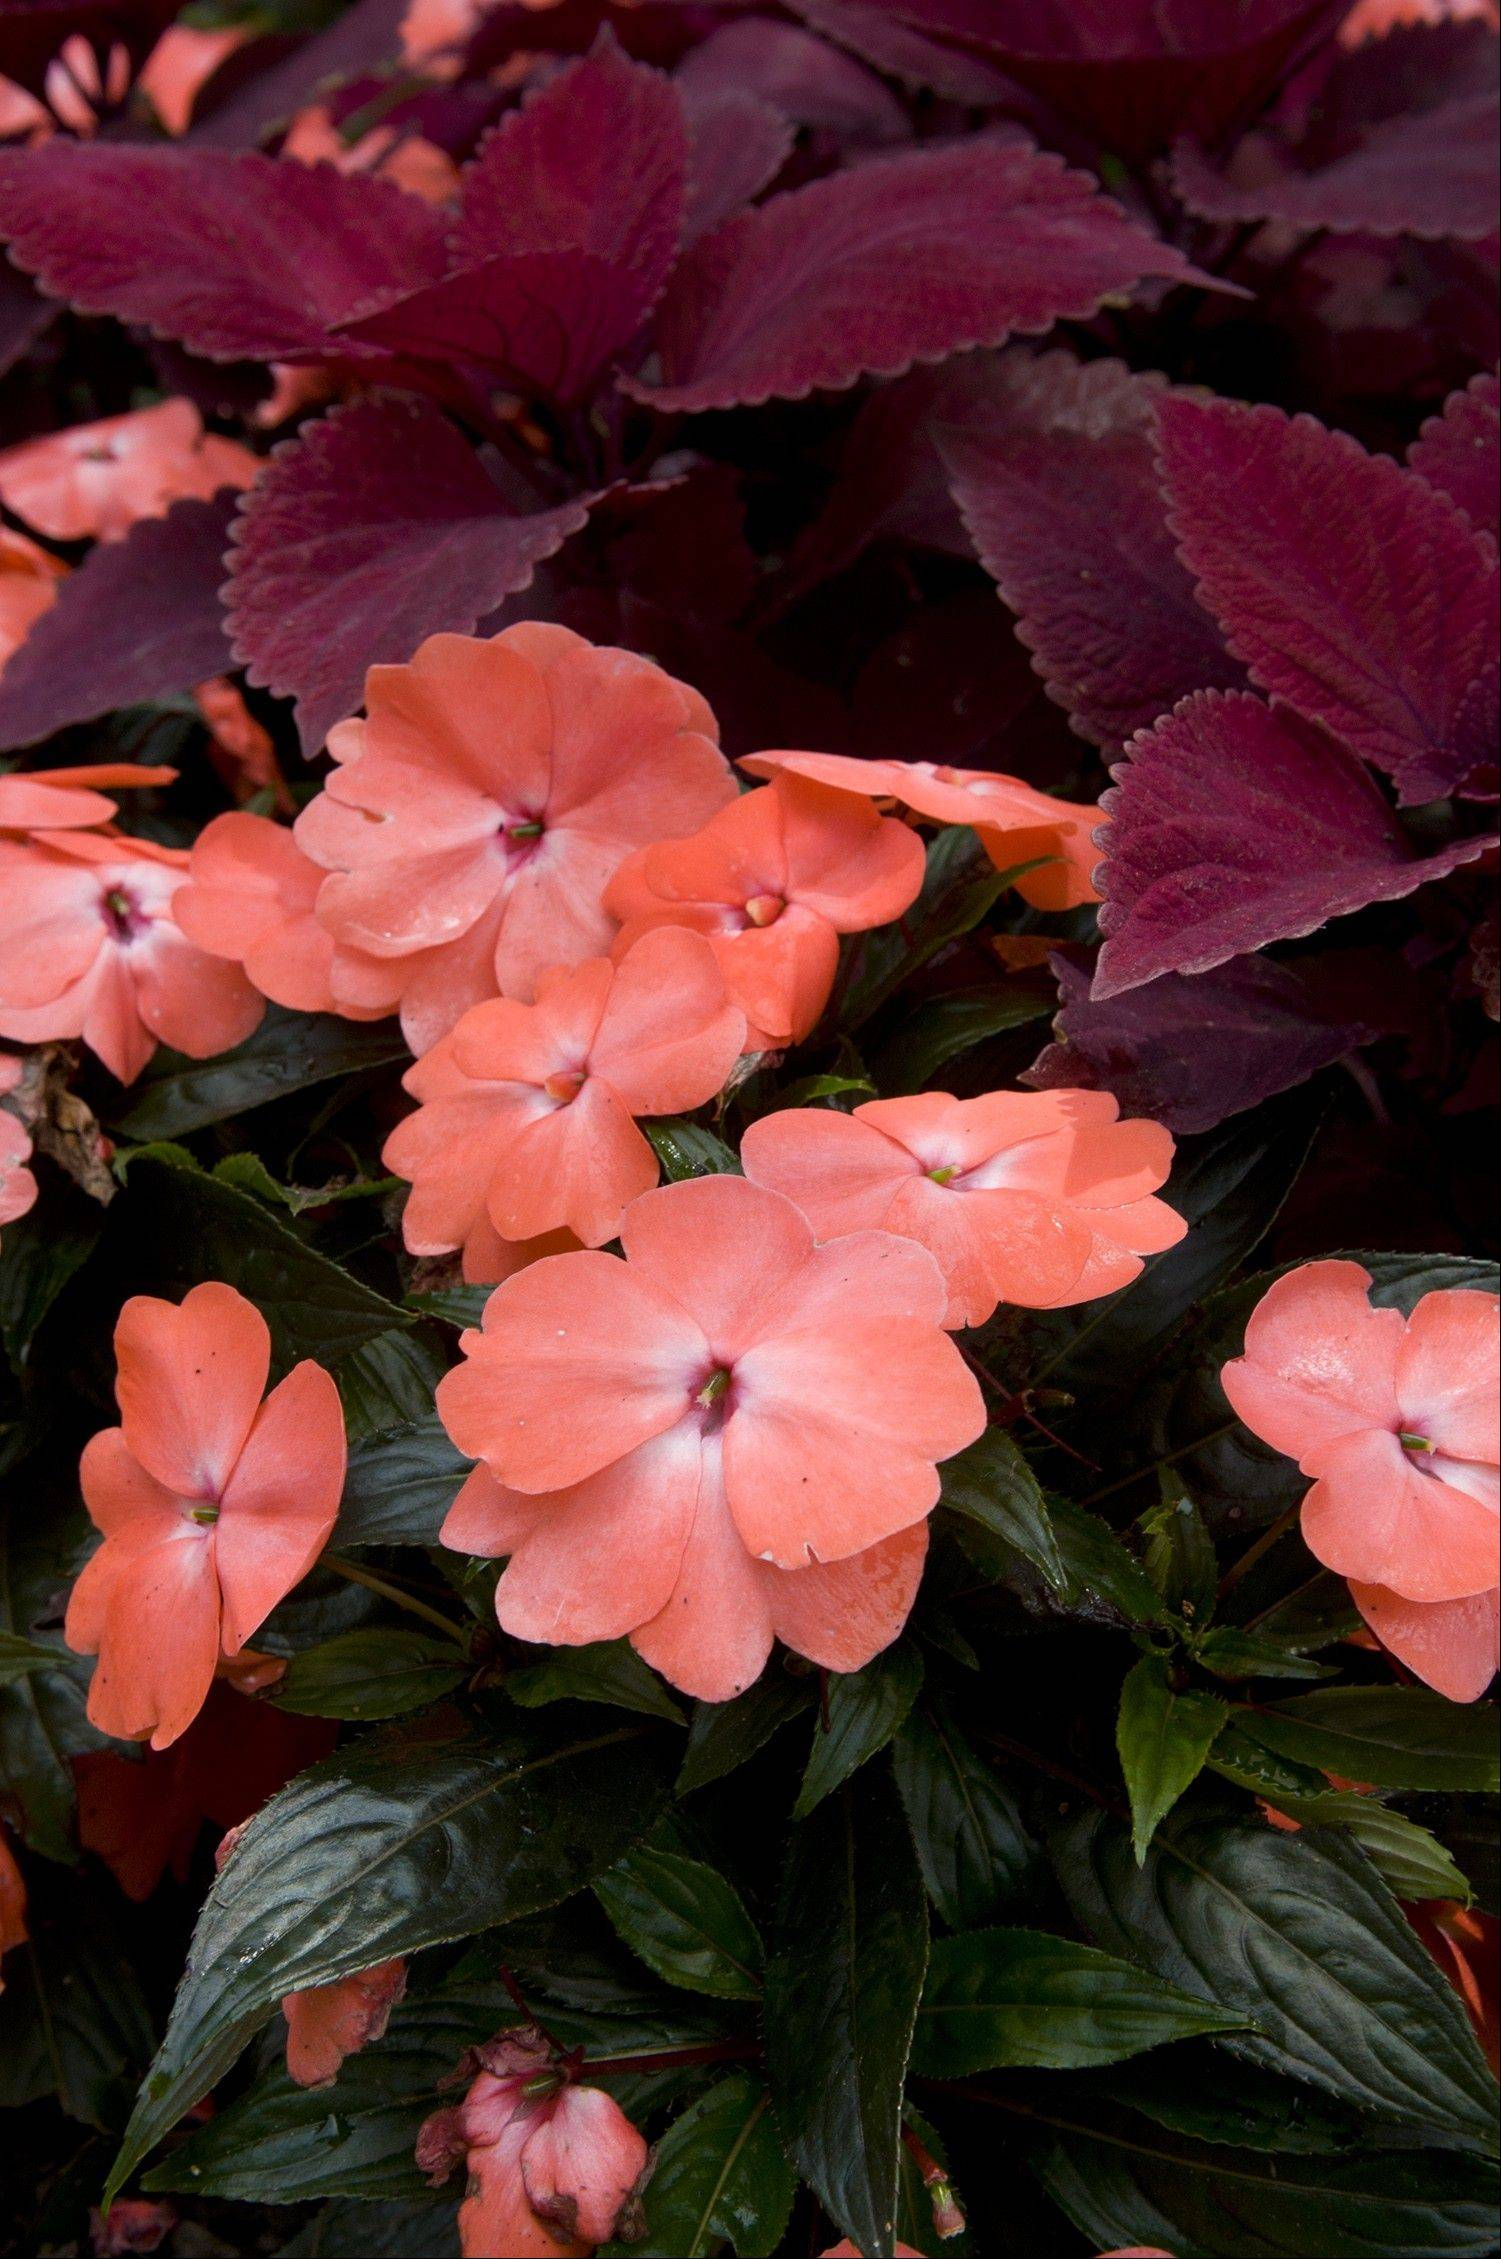 Some types of impatiens are more susceptible to downy mildew, a fungal disease, but New Guinea impatiens (Impatiens hawkerii ) are highly resistant.